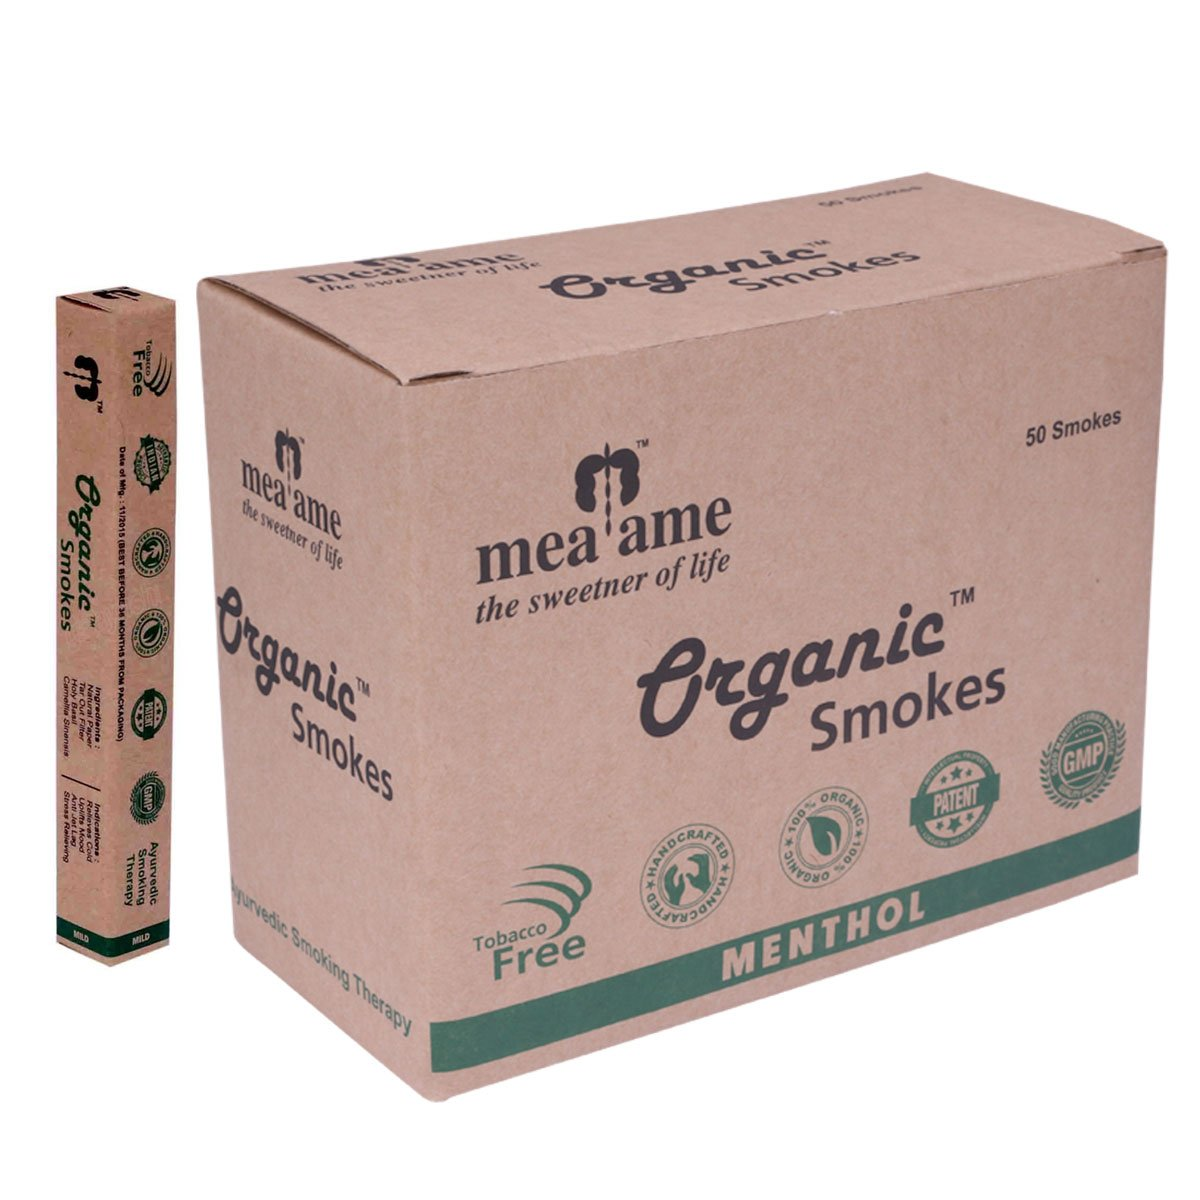 Organic Smokes - Luxury Herbal Cigarettes in Menthol Flavor. 50's Economy box. Filter fitted. 100% Herbal, GMP Certified. Quit Smoking Aid. Hand crafted. Excellent Alternative to Ecstasy and Honeyrose